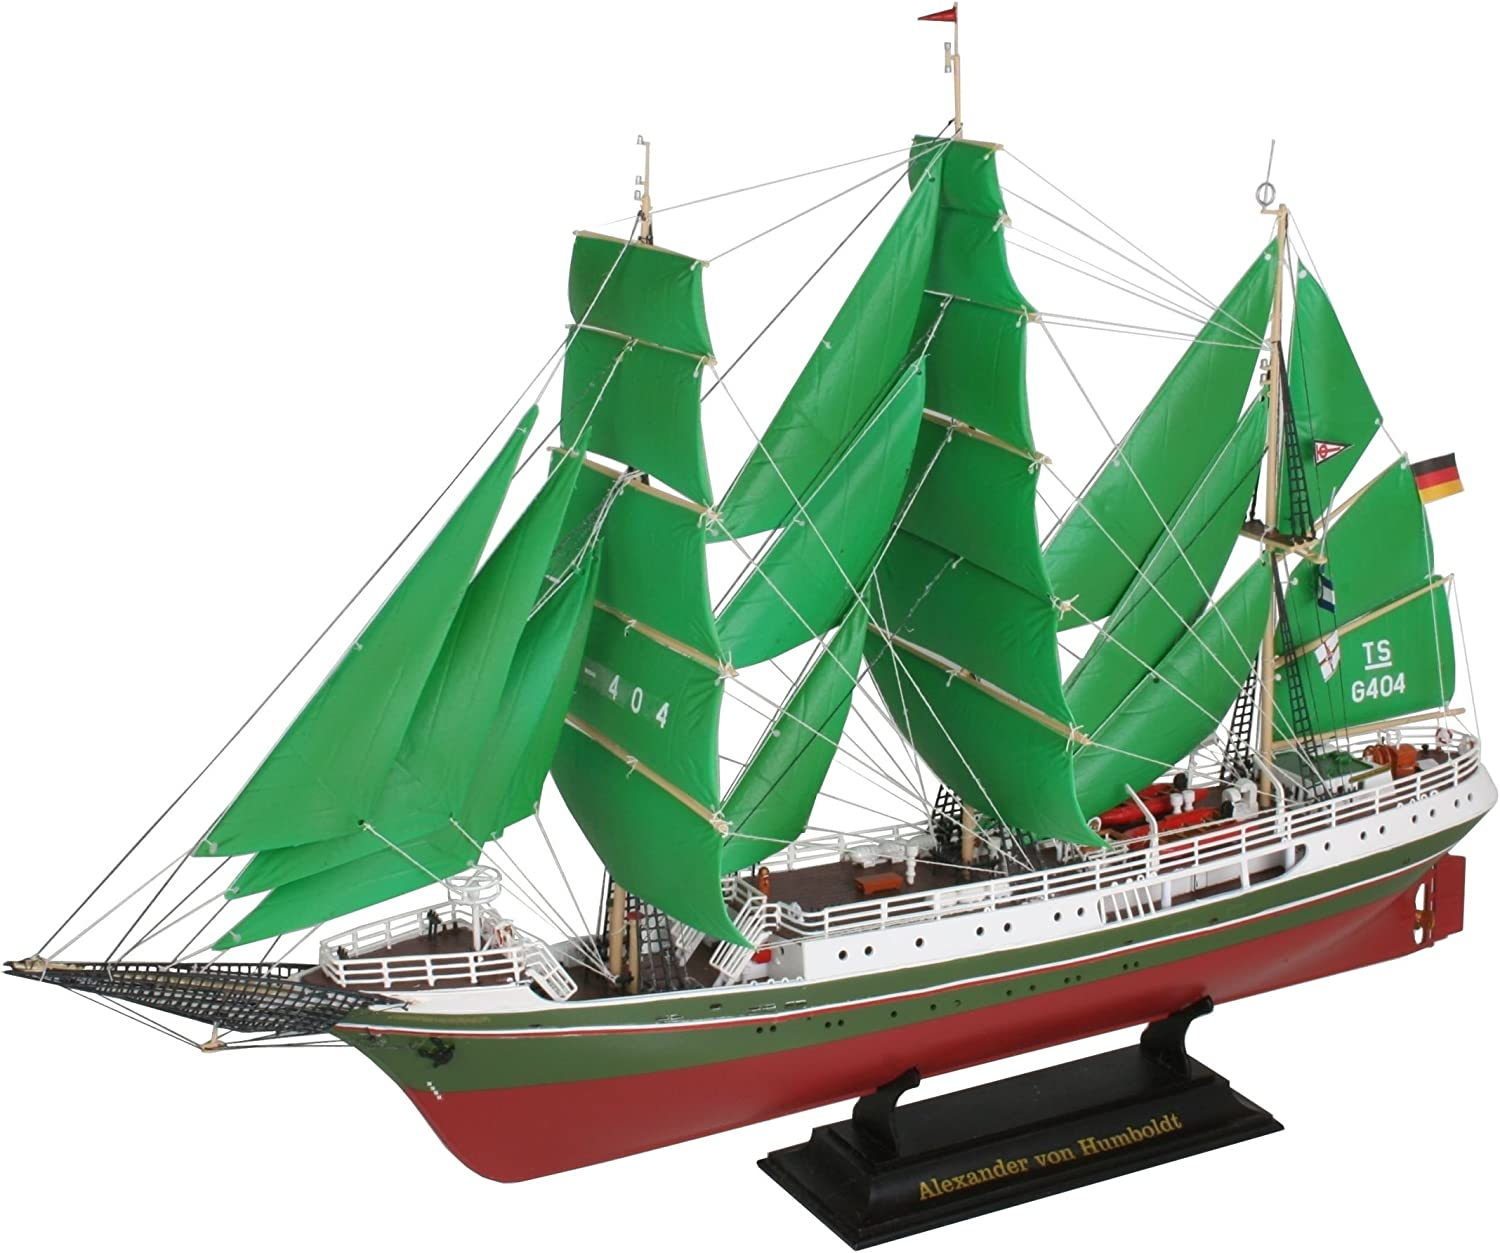 Alexander Von Humboldt (Sailing Ships) 1 150 Scale Revell Model Kit Exclusive